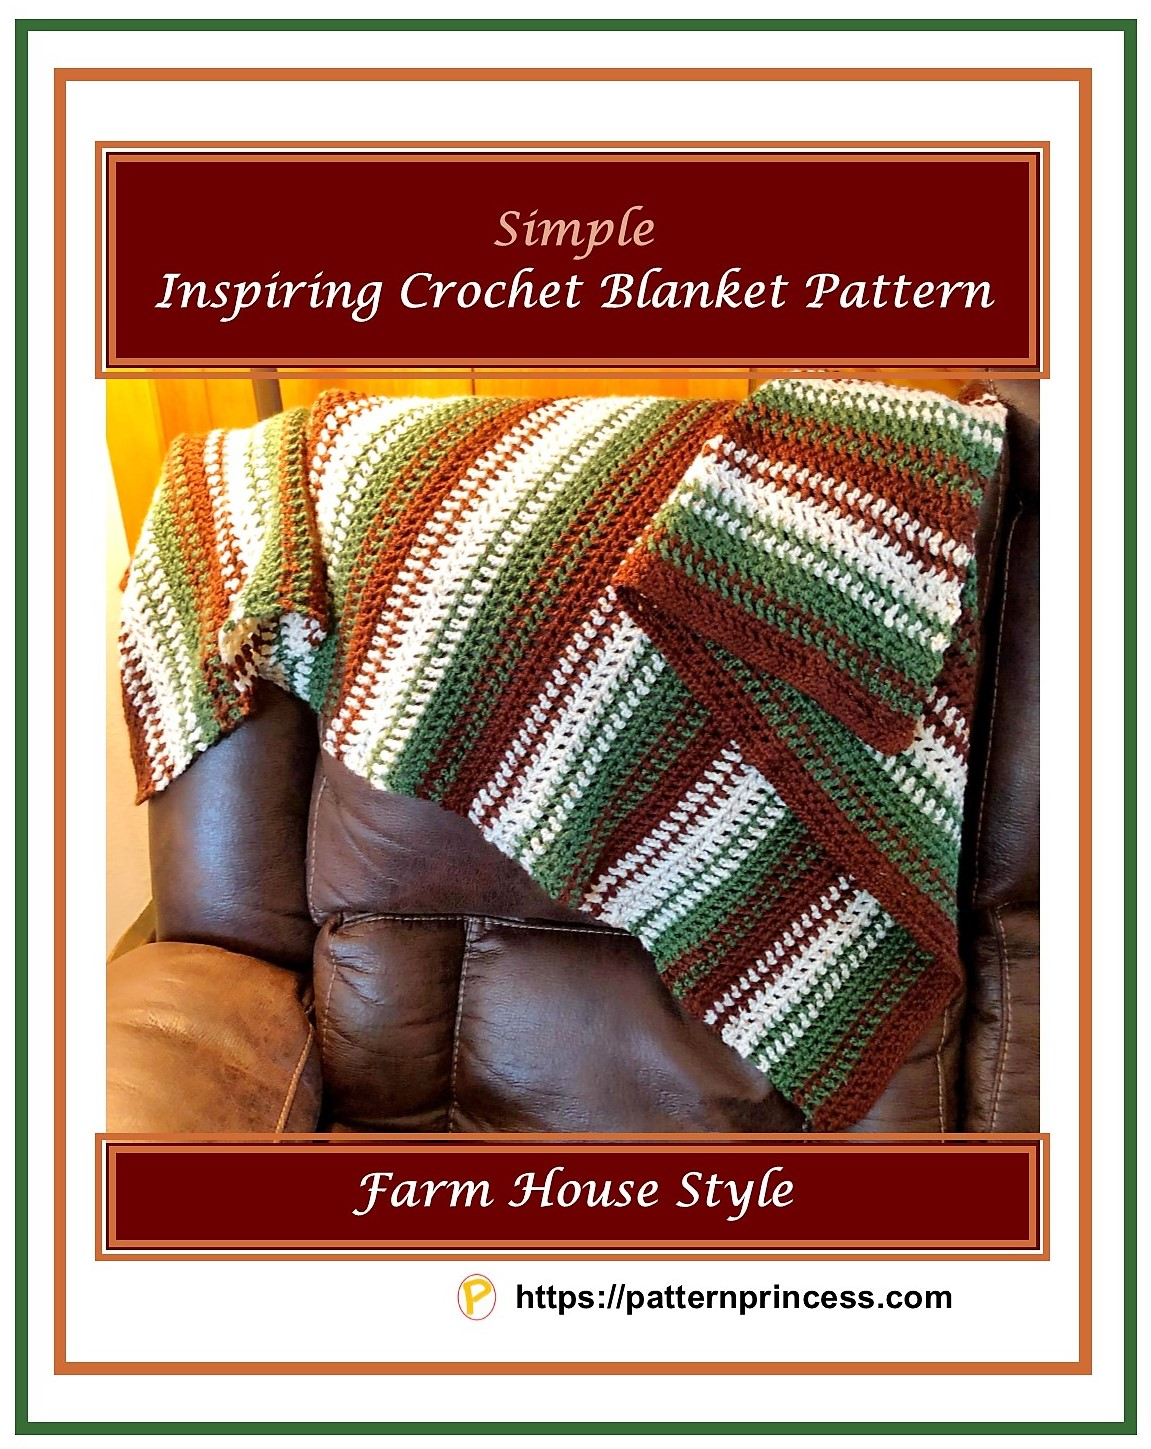 Simple Inspiring Crochet Blanket Pattern 1